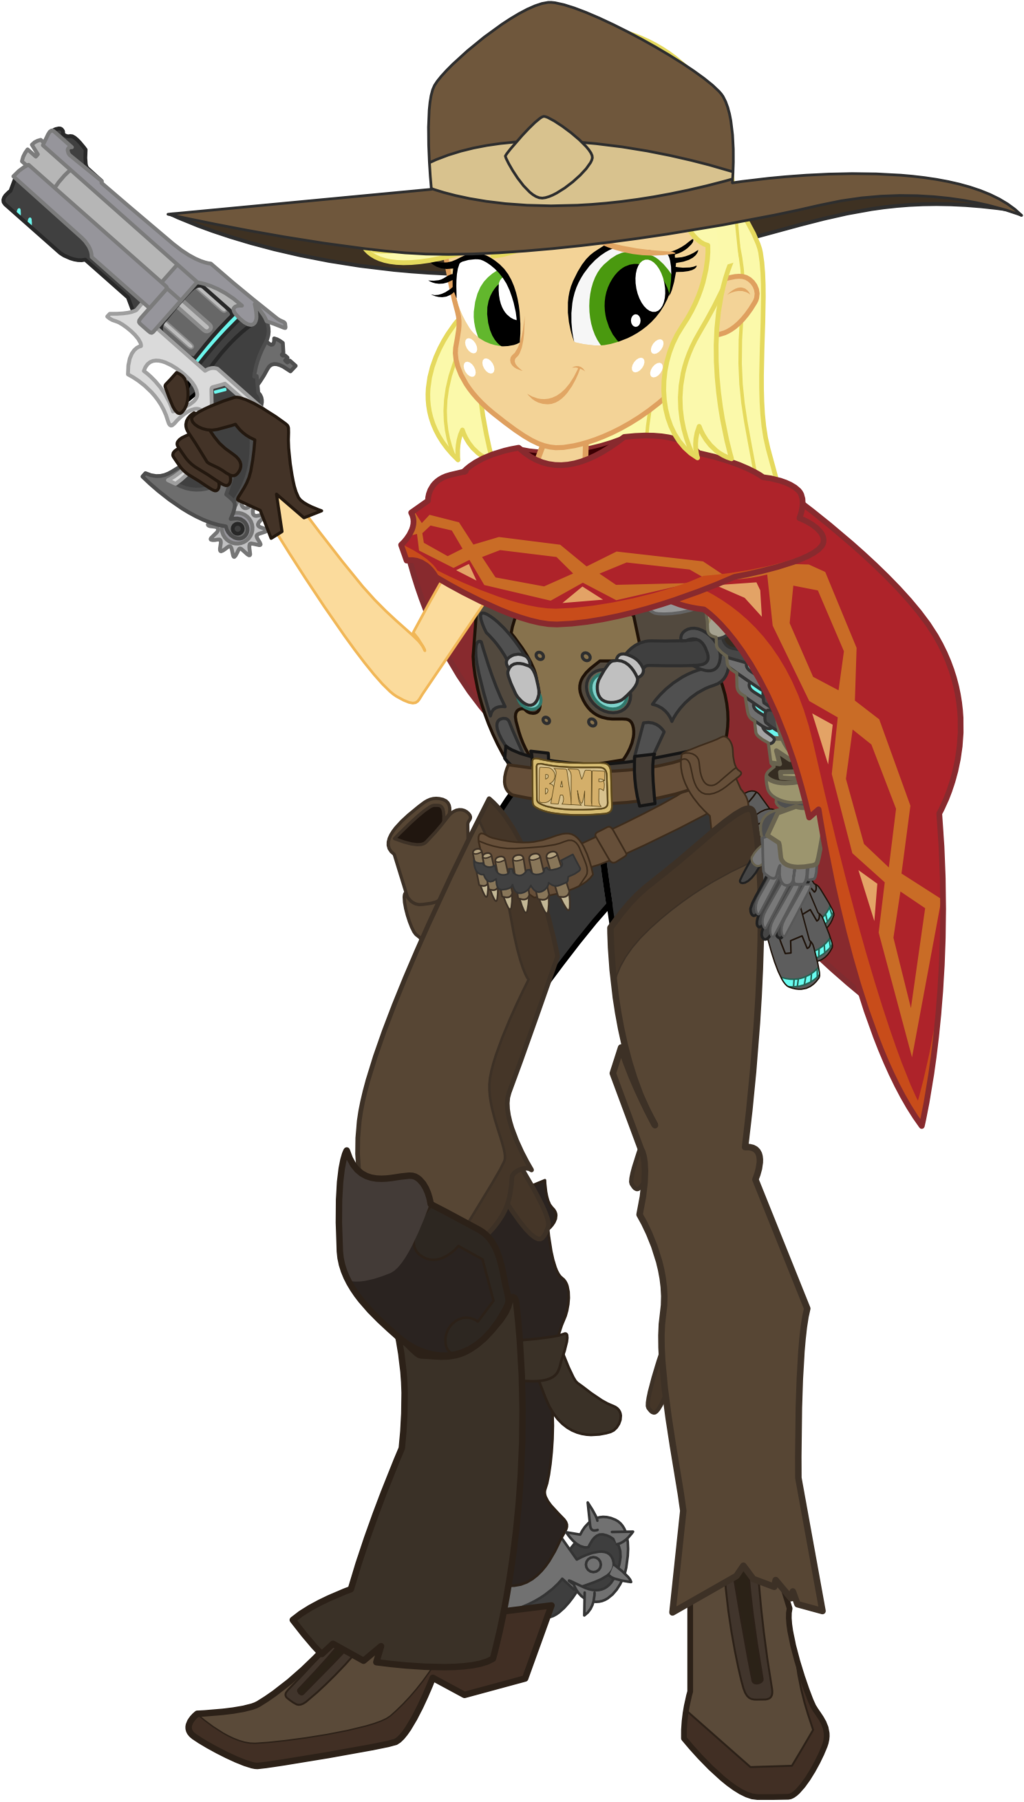 Mccree png ahegao. Applejack as overwatch by